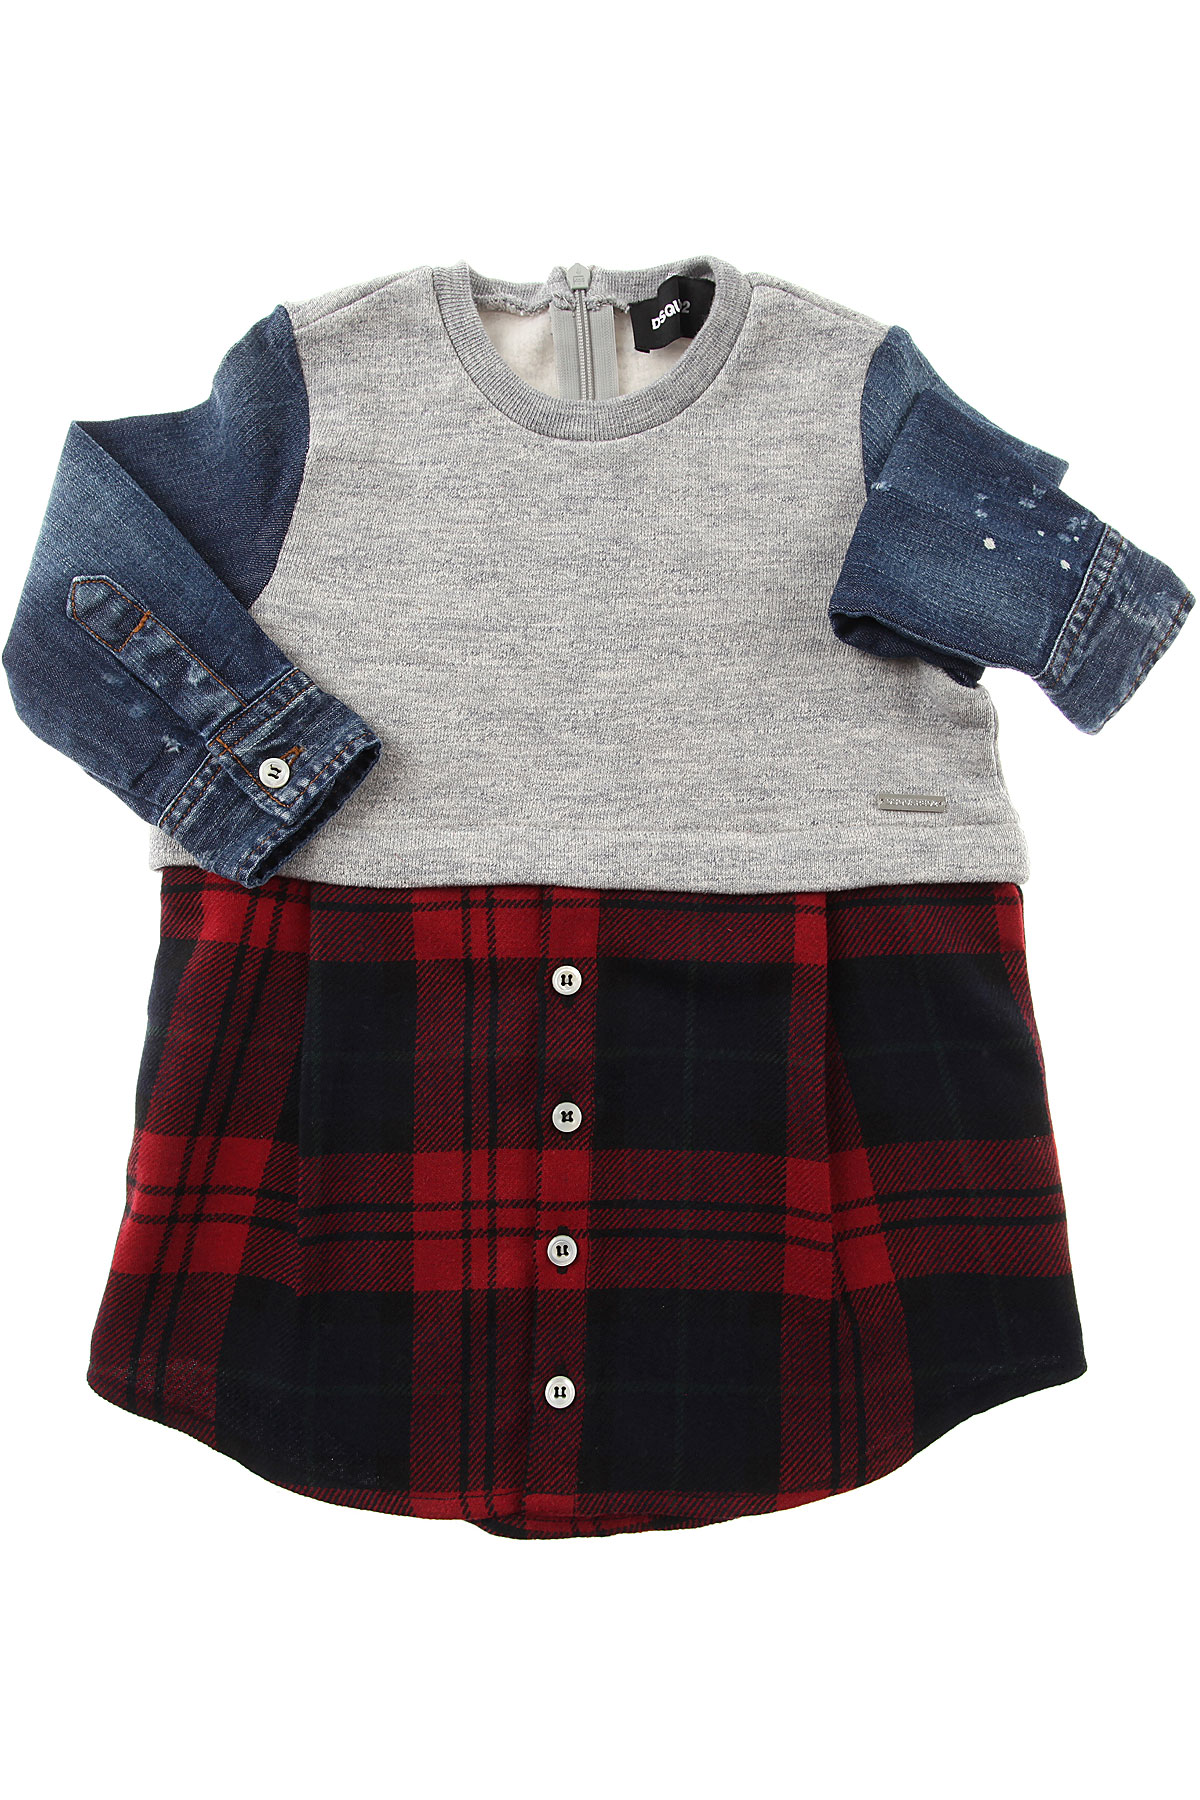 Image of Dsquared2 Baby Dress for Girls, Grey, Cotton, 2017, 12M 18M 2Y